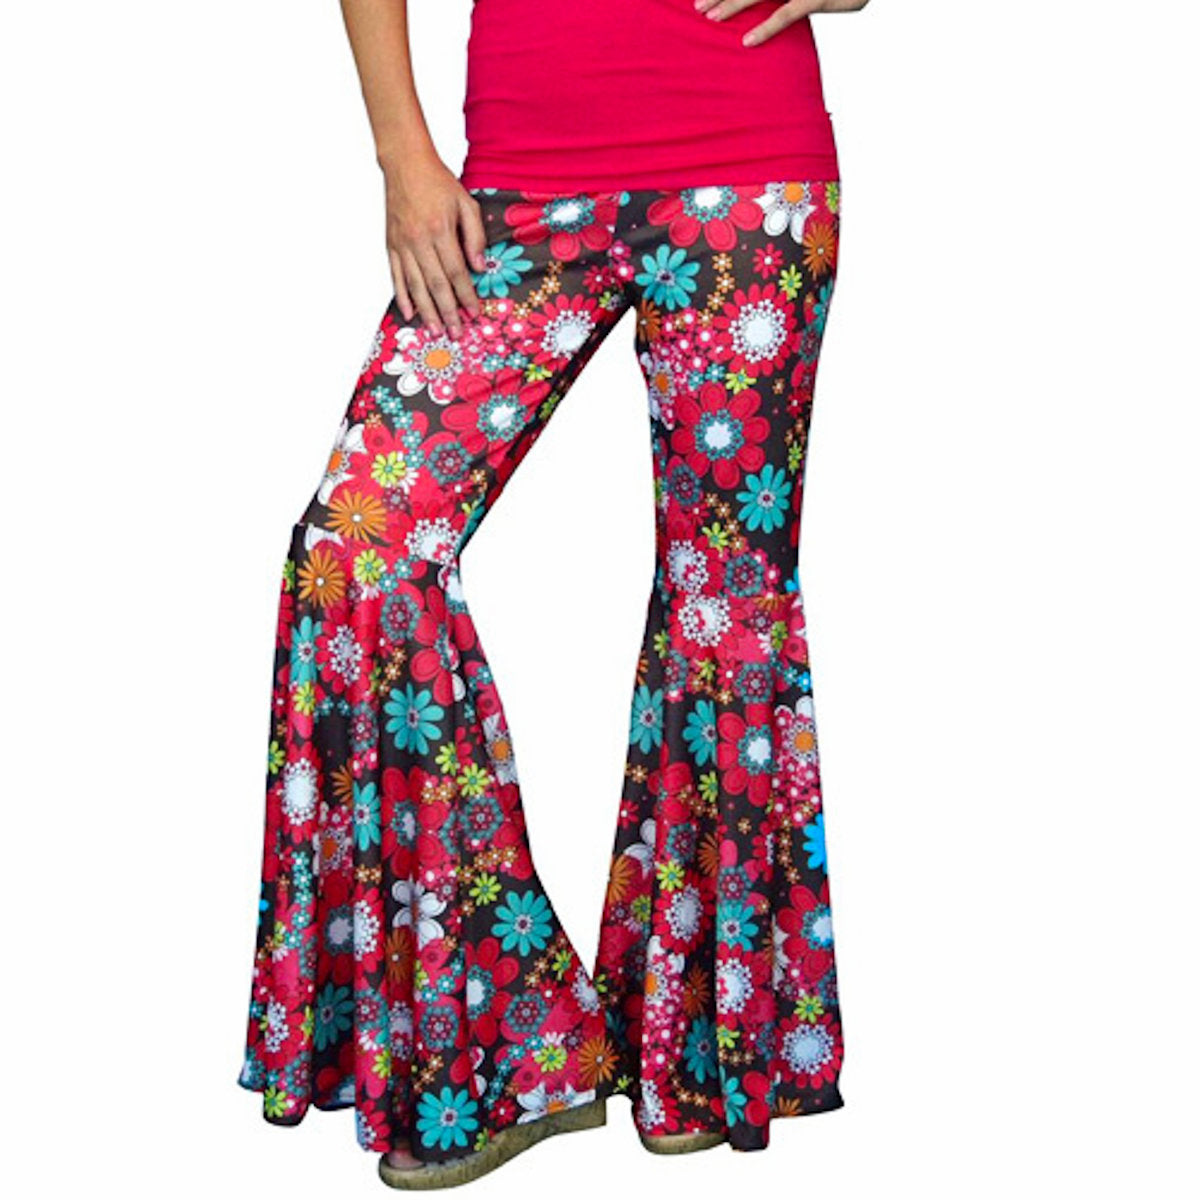 1970's Hippie Bell Bottoms Pants Women's Fancy Dress Hippy Flower Power Pants